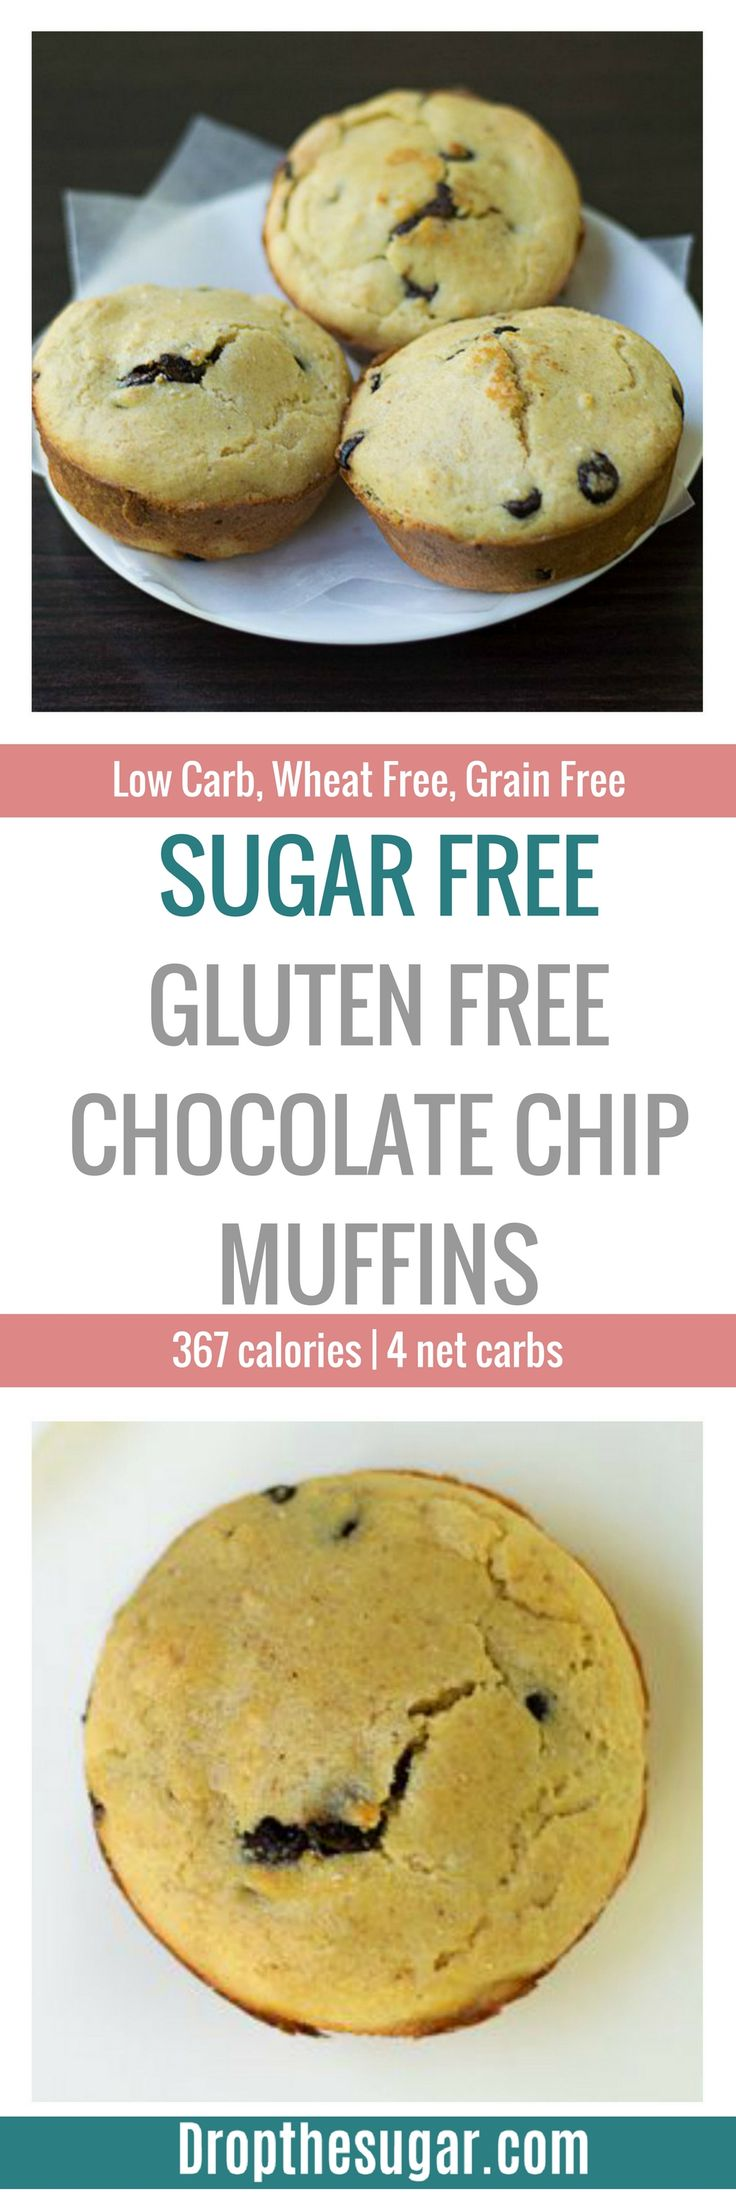 Sugar Free Gluten Free Chocolate Chip Muffins | an easy low carb muffins with almond flour and sugar free chocolate chips. Tastes just like store bought muffins! Pin now to make later!